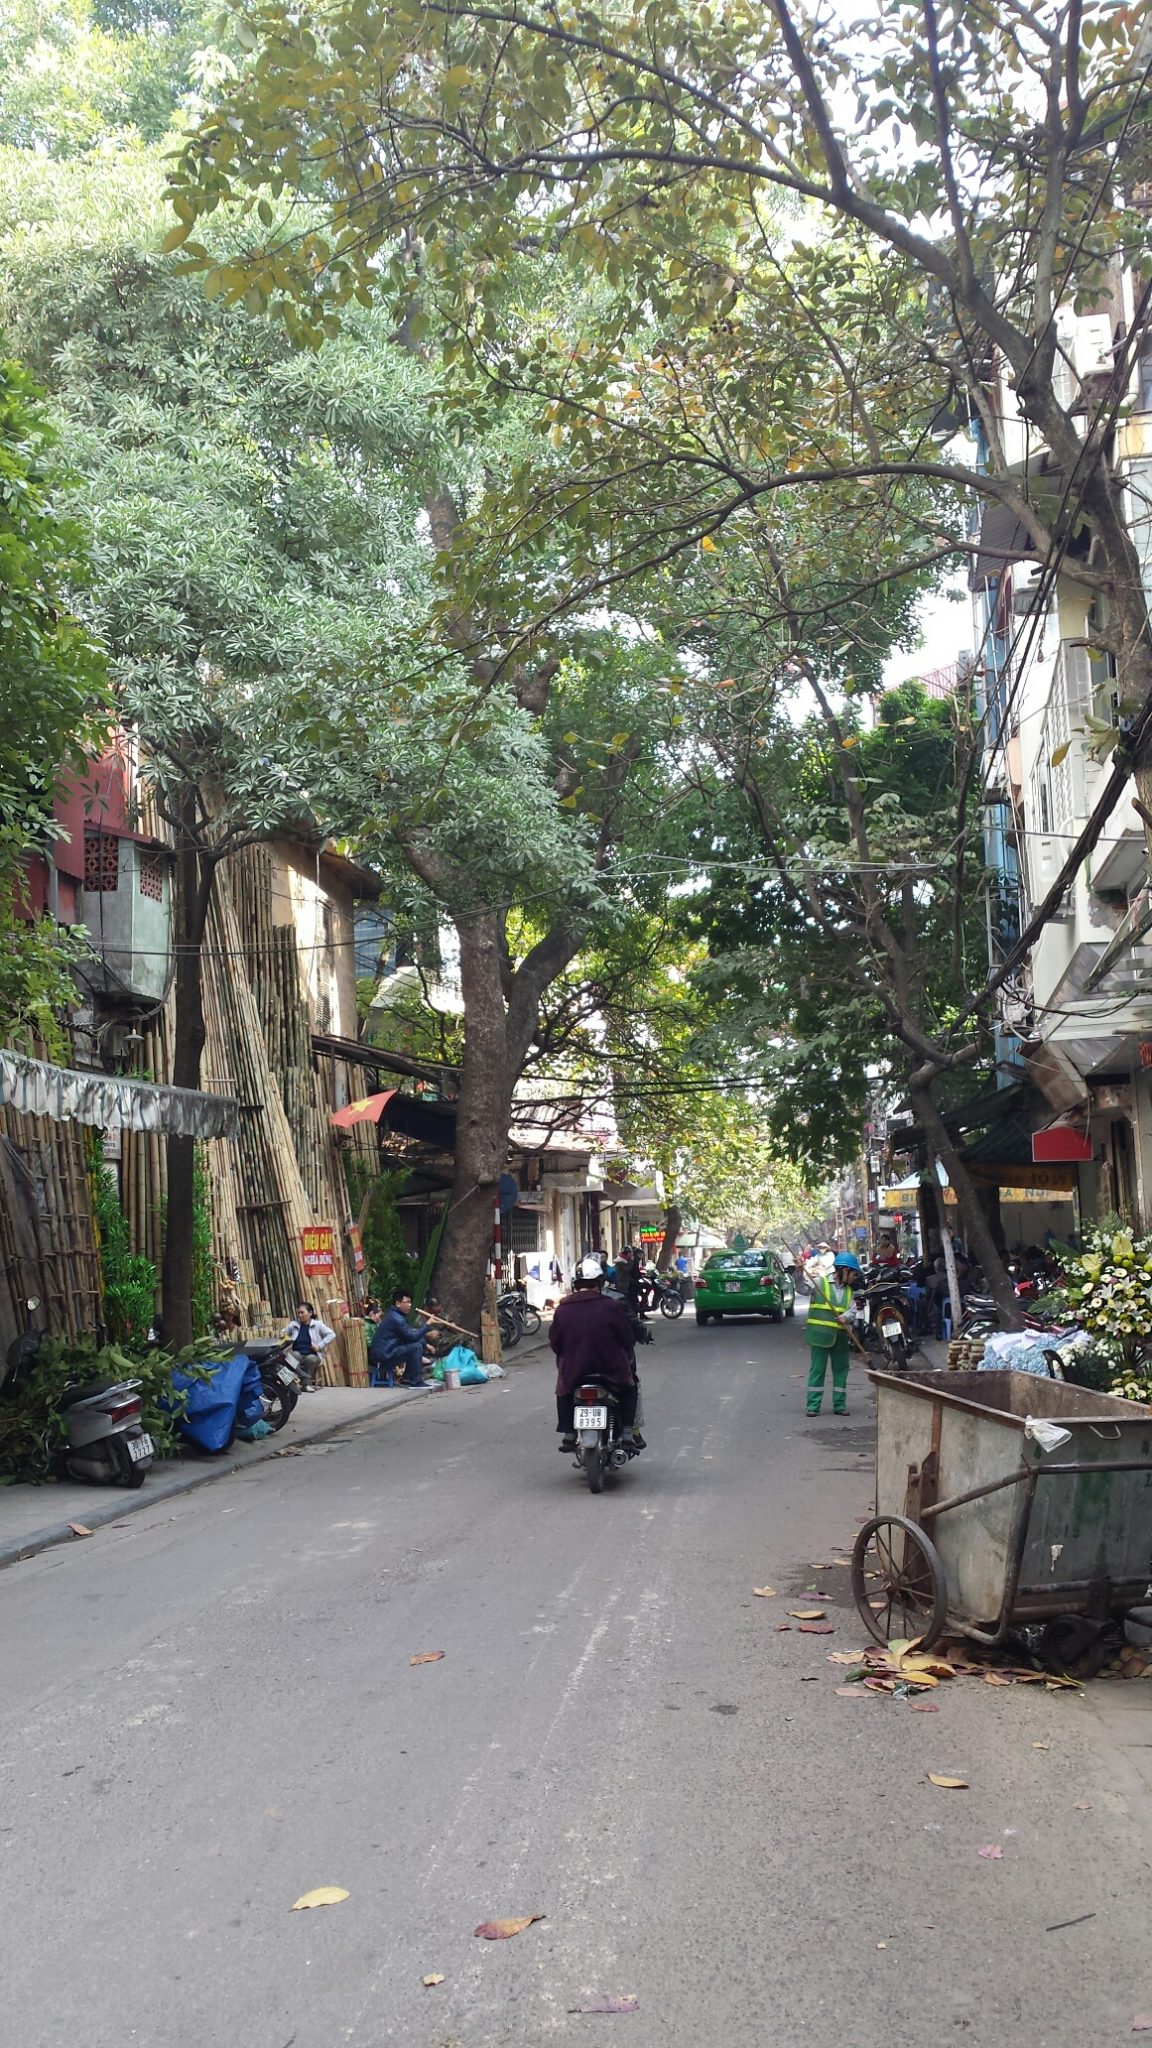 Hanoi on the streets